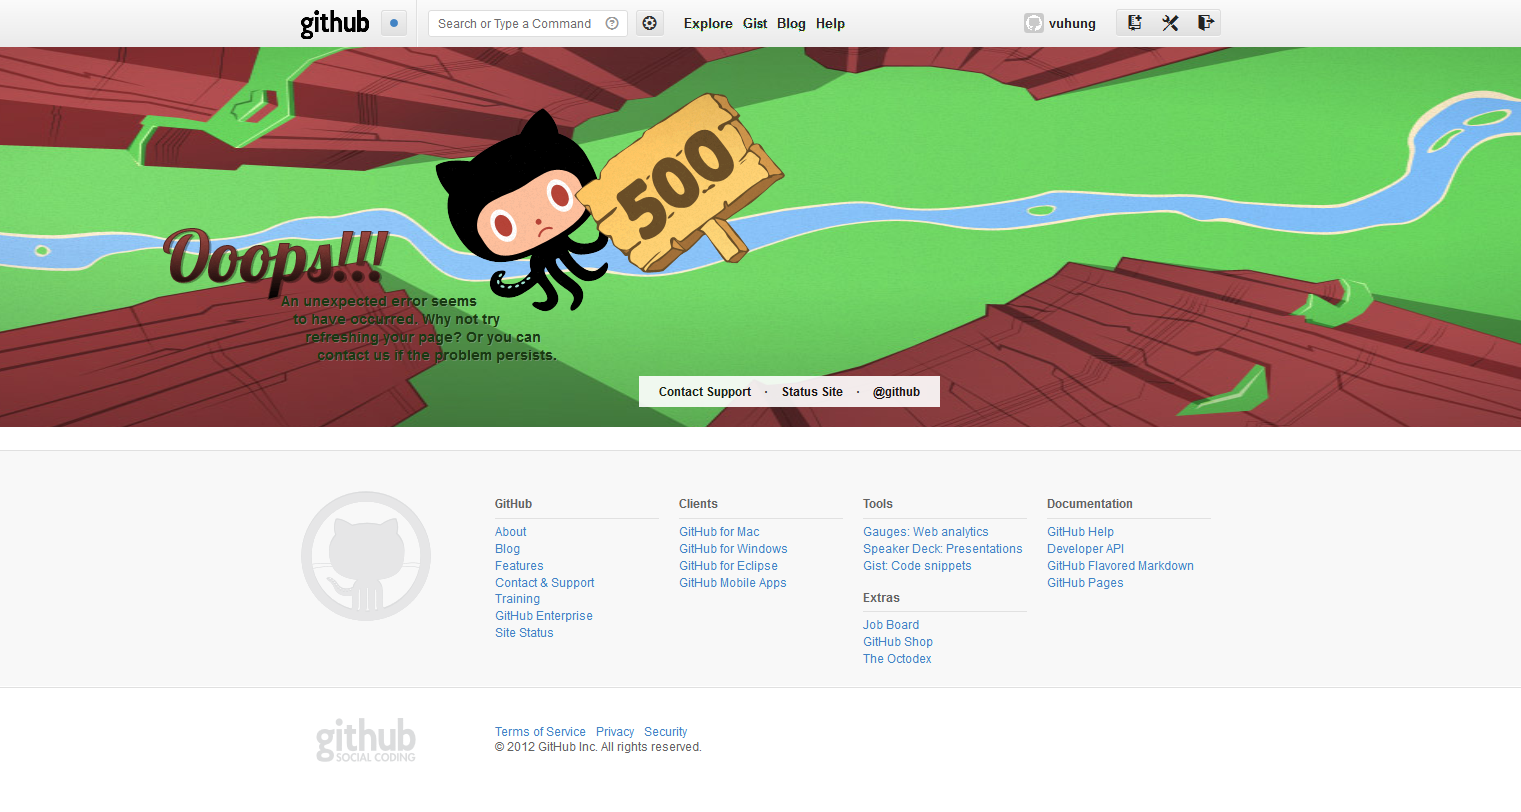 Minitrue: Don't Conjecture on GitHub DDoS Attack (Updated)